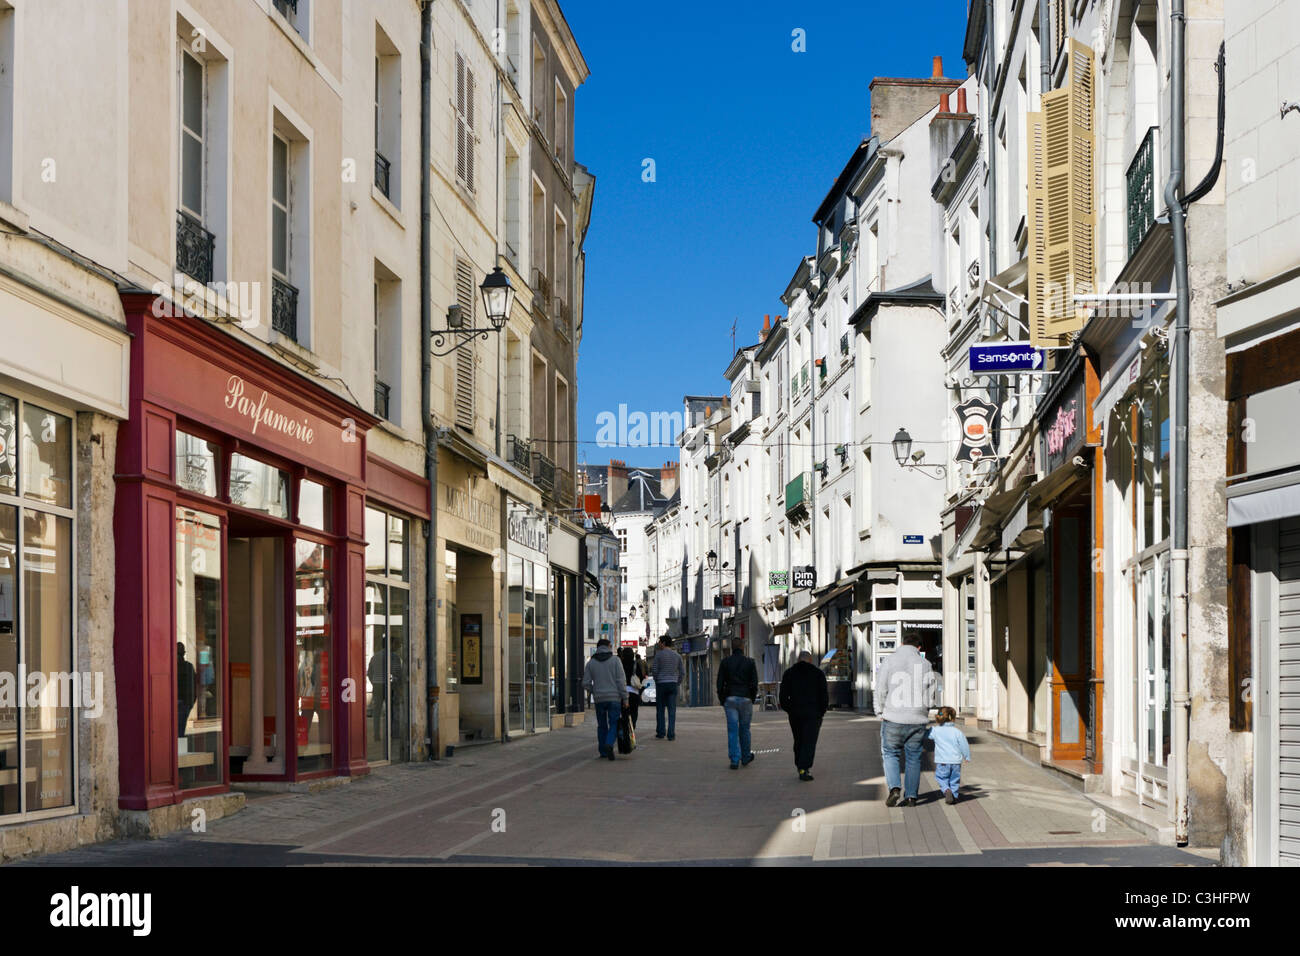 Shops on a street in the old town centre, Blois, Loire Valley, Touraine, France - Stock Image